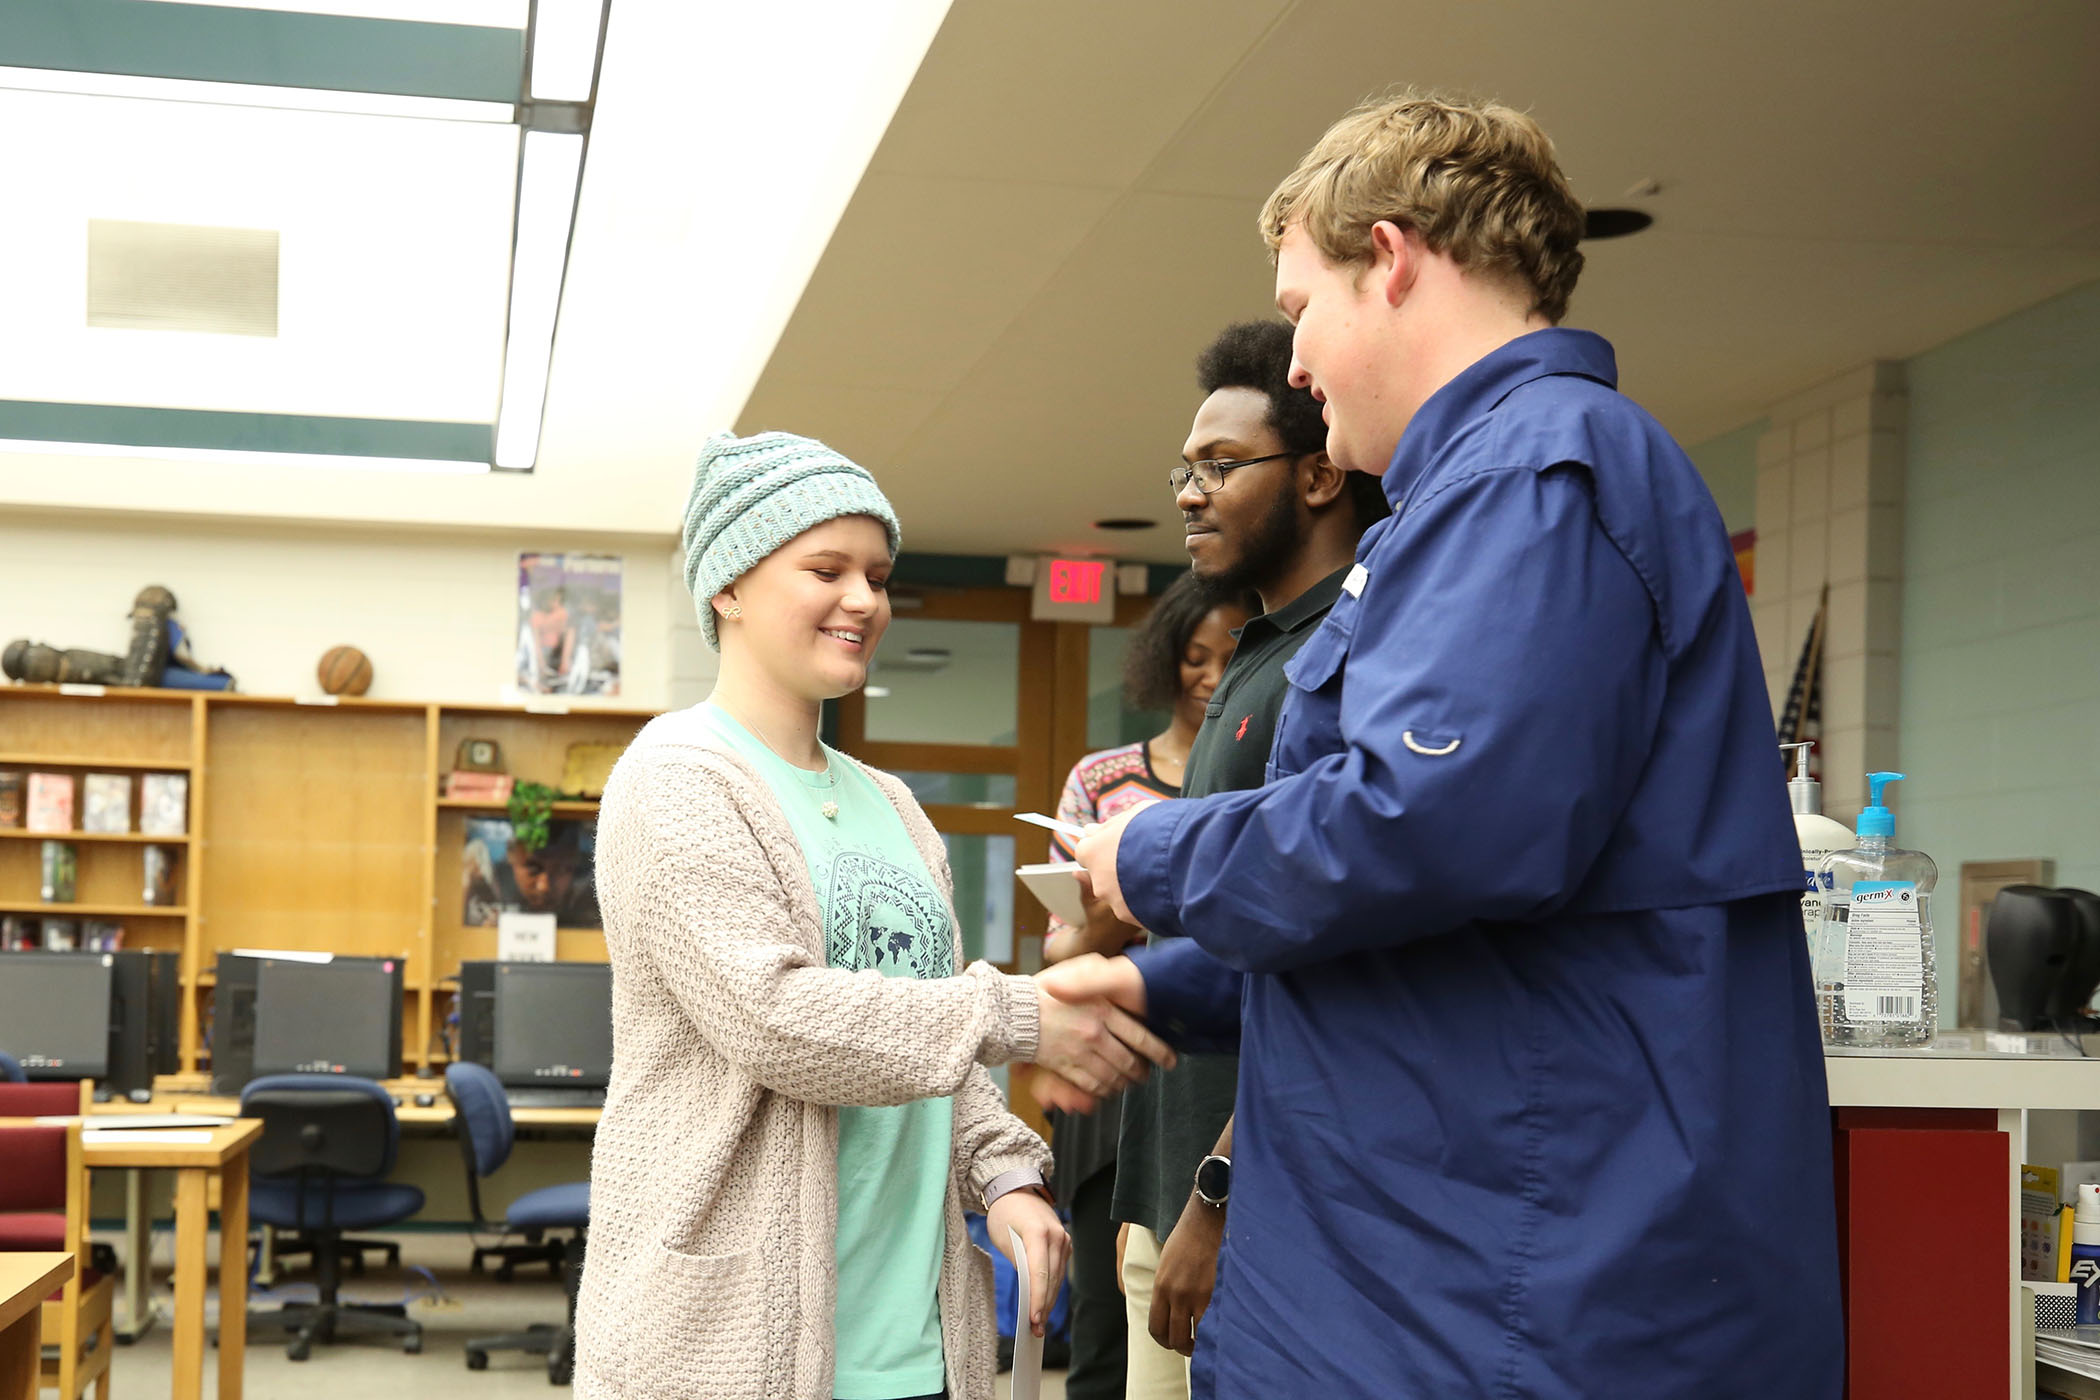 Mu Alpha Theta president and vice-president hand out certificates and cards to members.